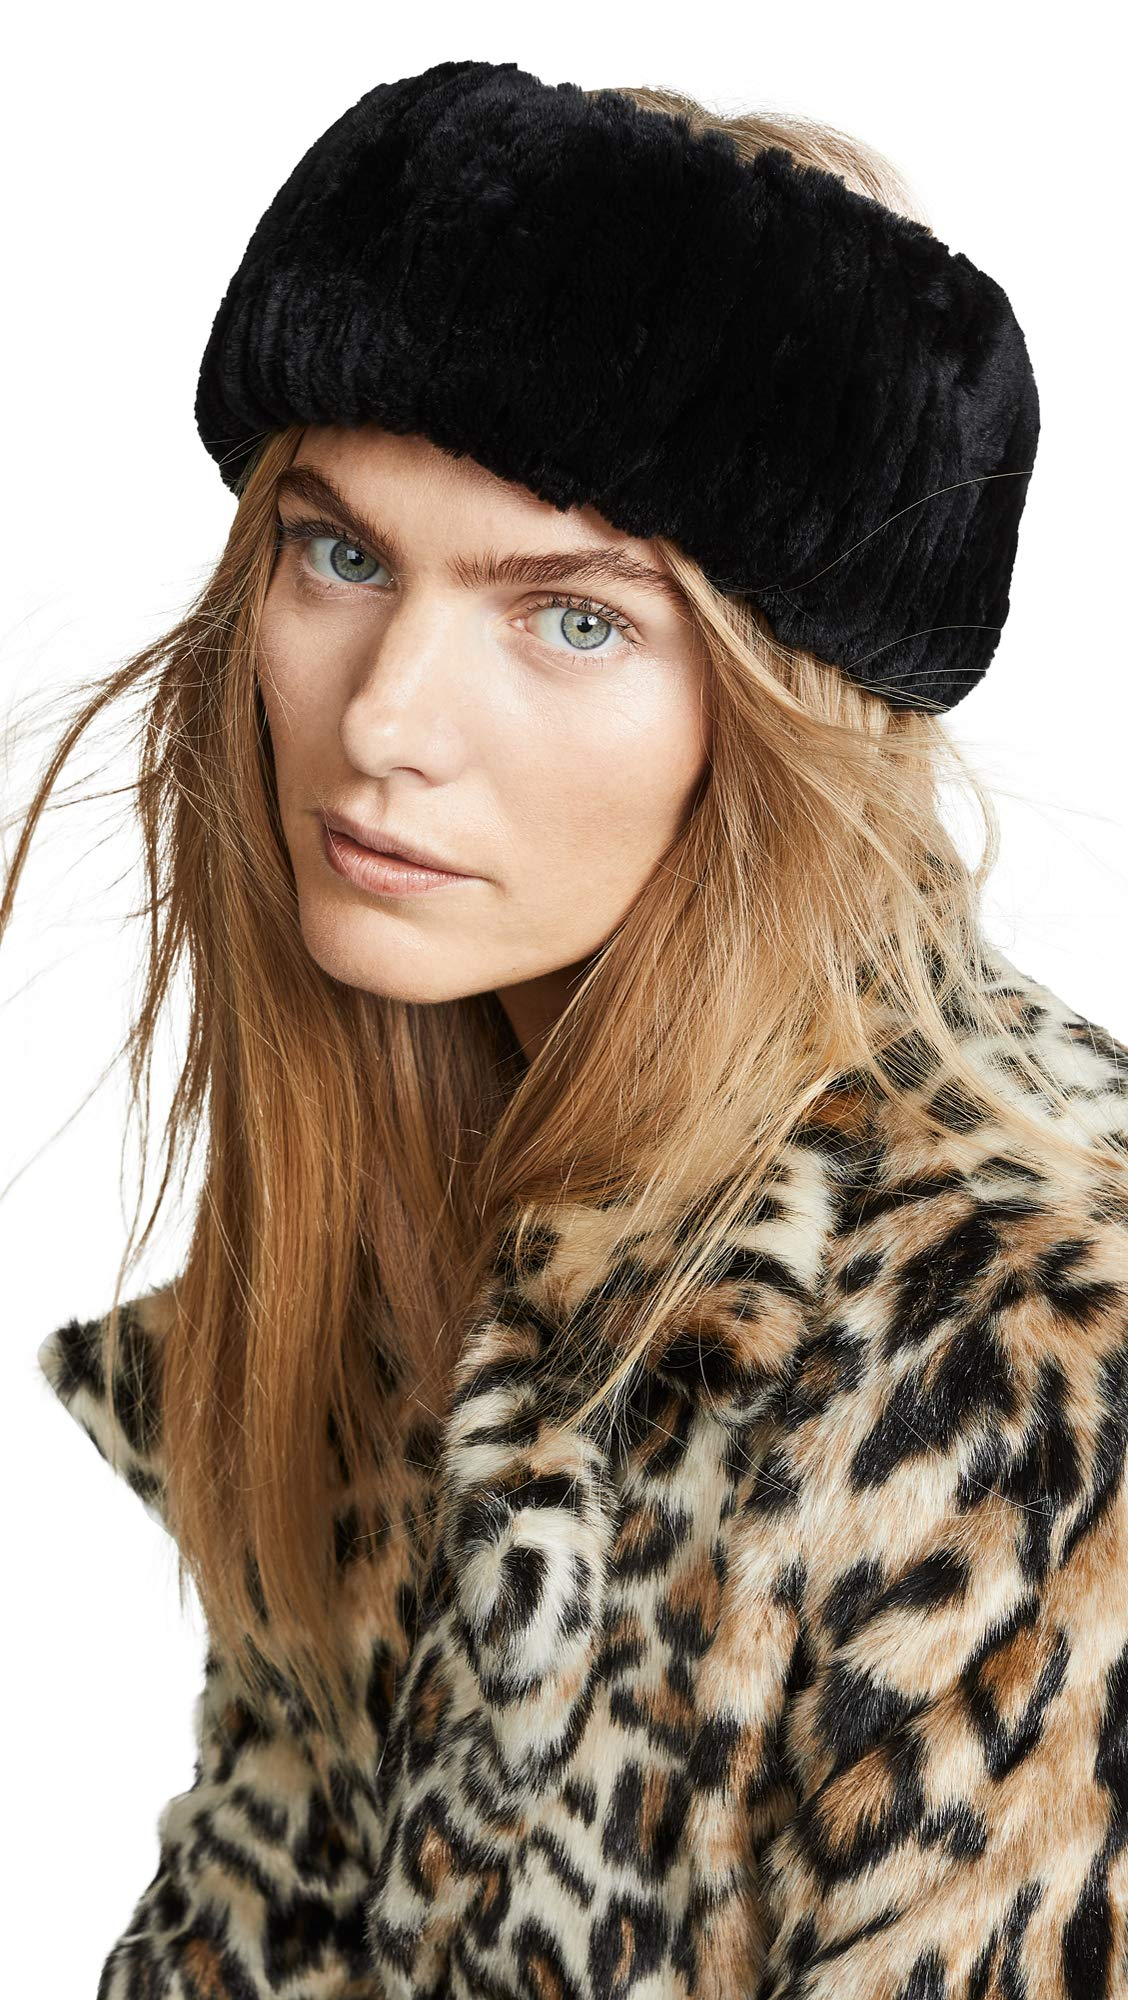 Adrienne Landau Women's Rex Rabbit Fur Headband, Black, One Size by Adrienne Landau